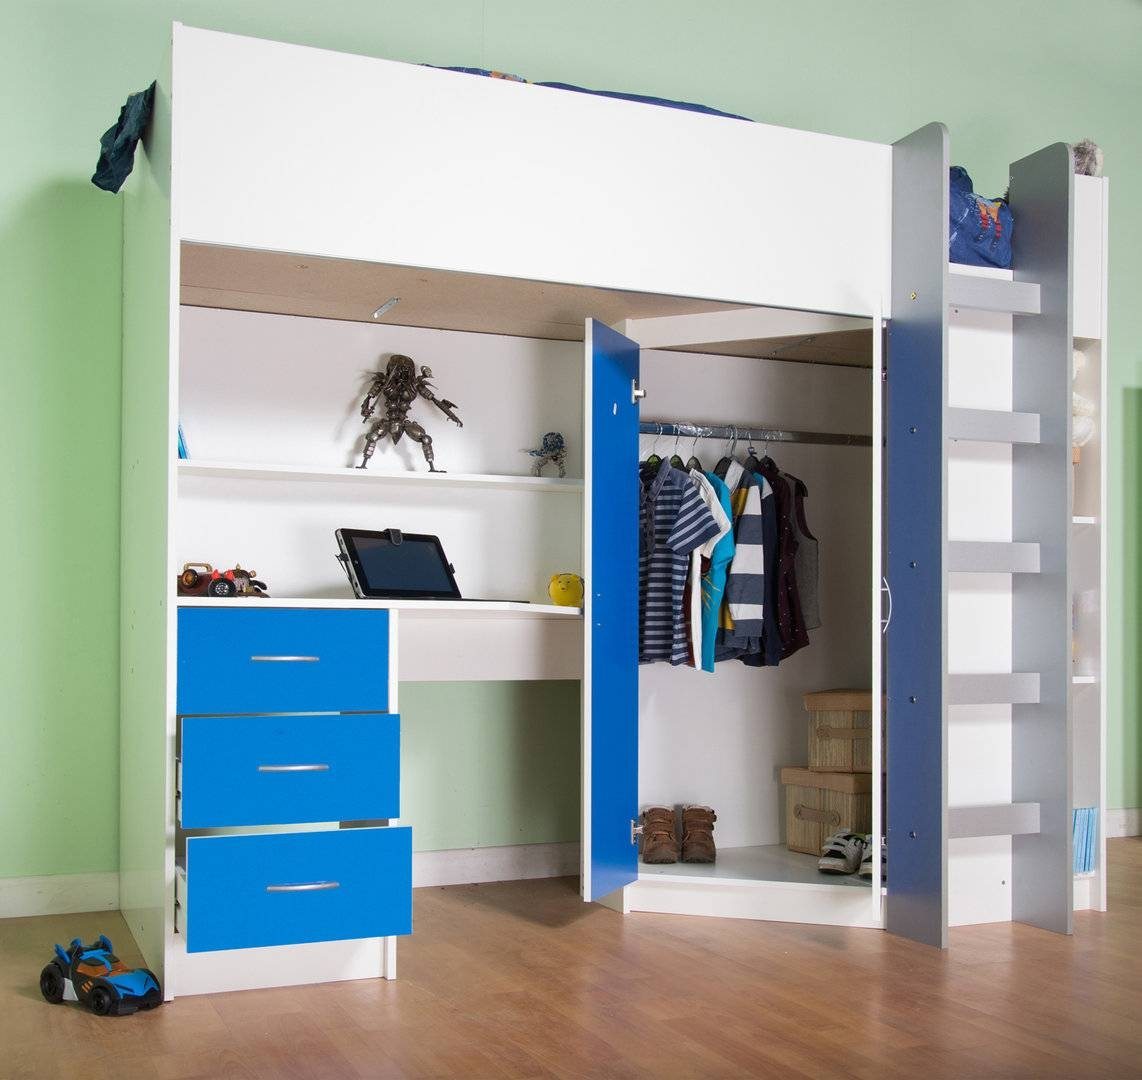 Candy Childrens High Sleeper Bed White/blue for High Sleeper Cabin Bed With Wardrobes (Image 4 of 15)